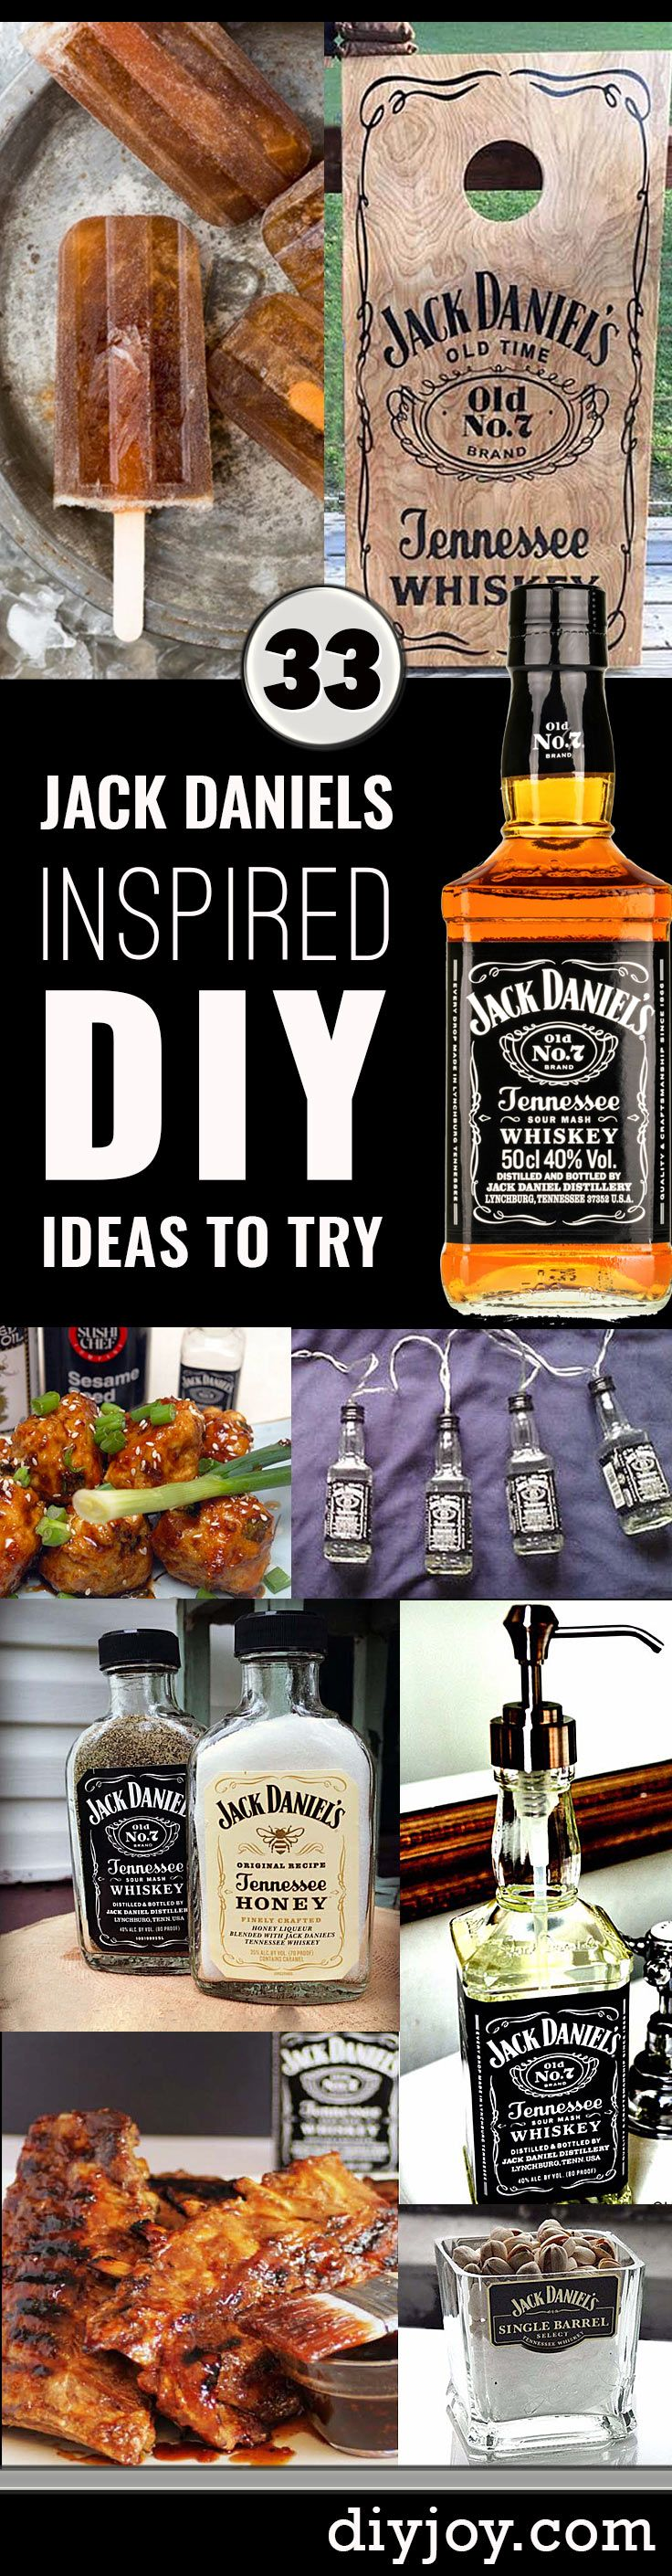 Fun DIY Ideas Made With Jack Daniels - Recipes, Projects and Crafts With The Bottle, Everything From Lamps and Decorations to Fudge and Cupcakes | diyjoy.com/...